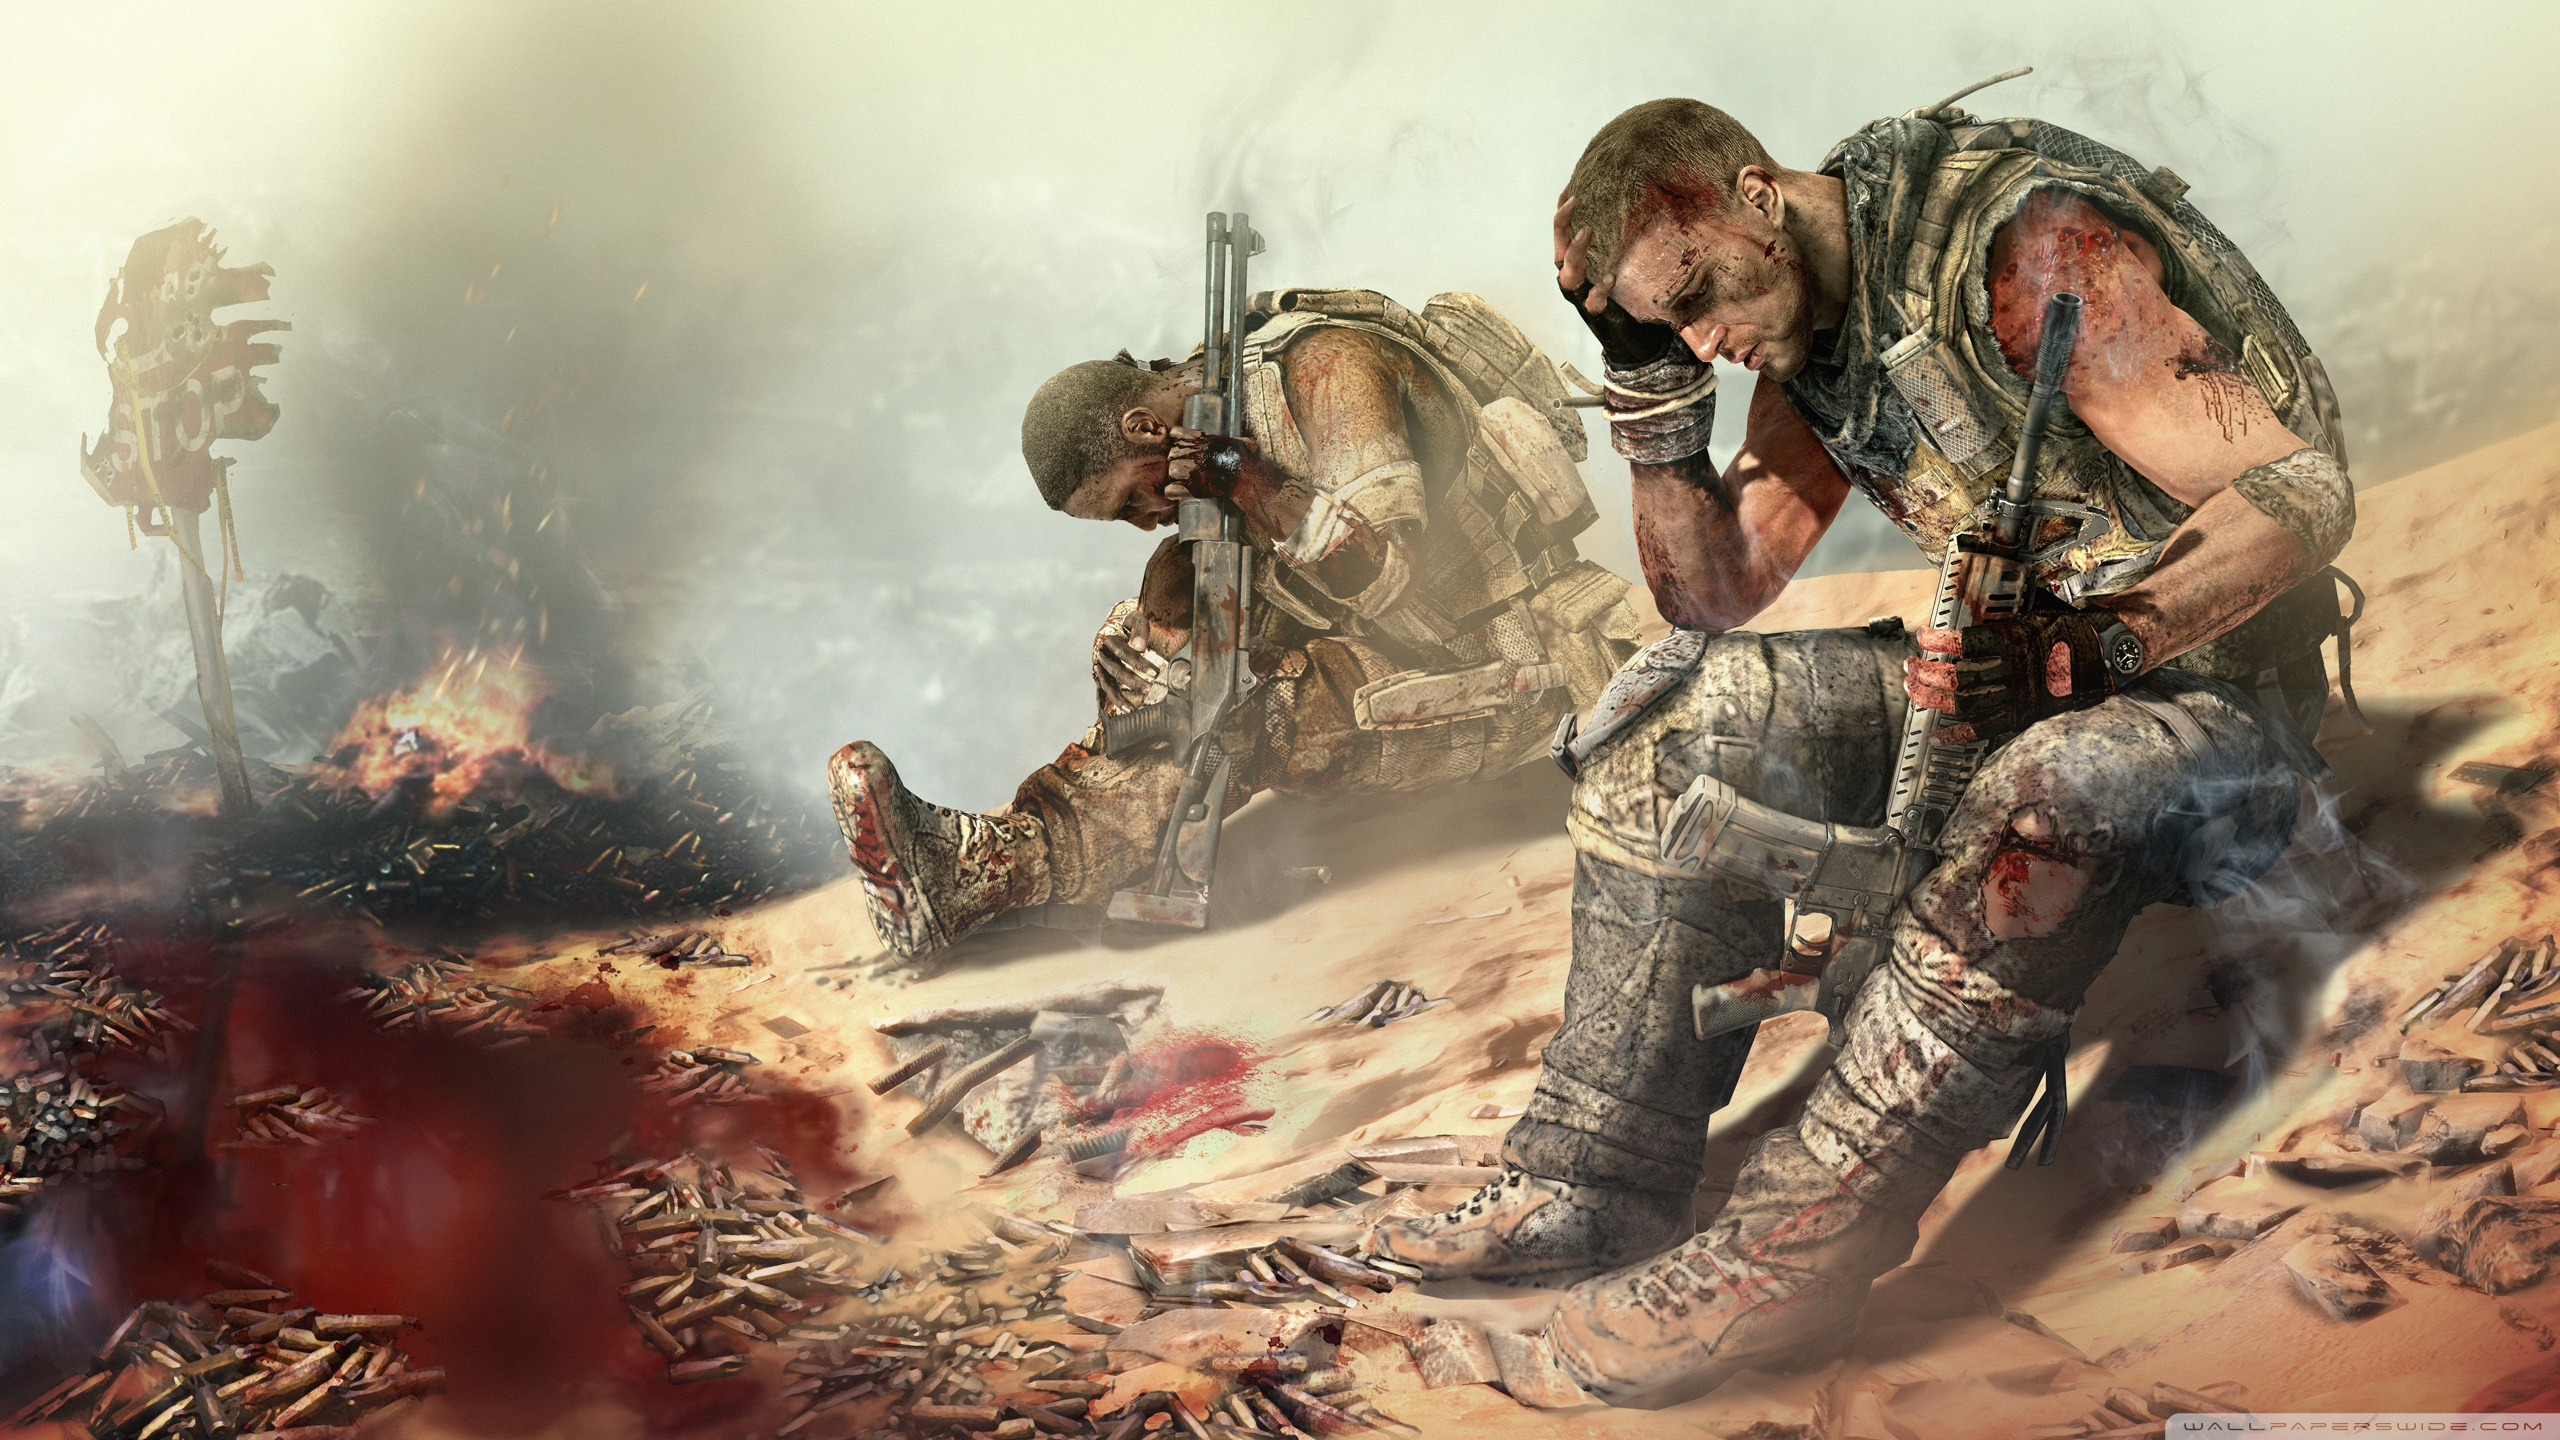 Spec Ops The Line HD Wallpaper 9   2560 X 1440 stmednet 2560x1440